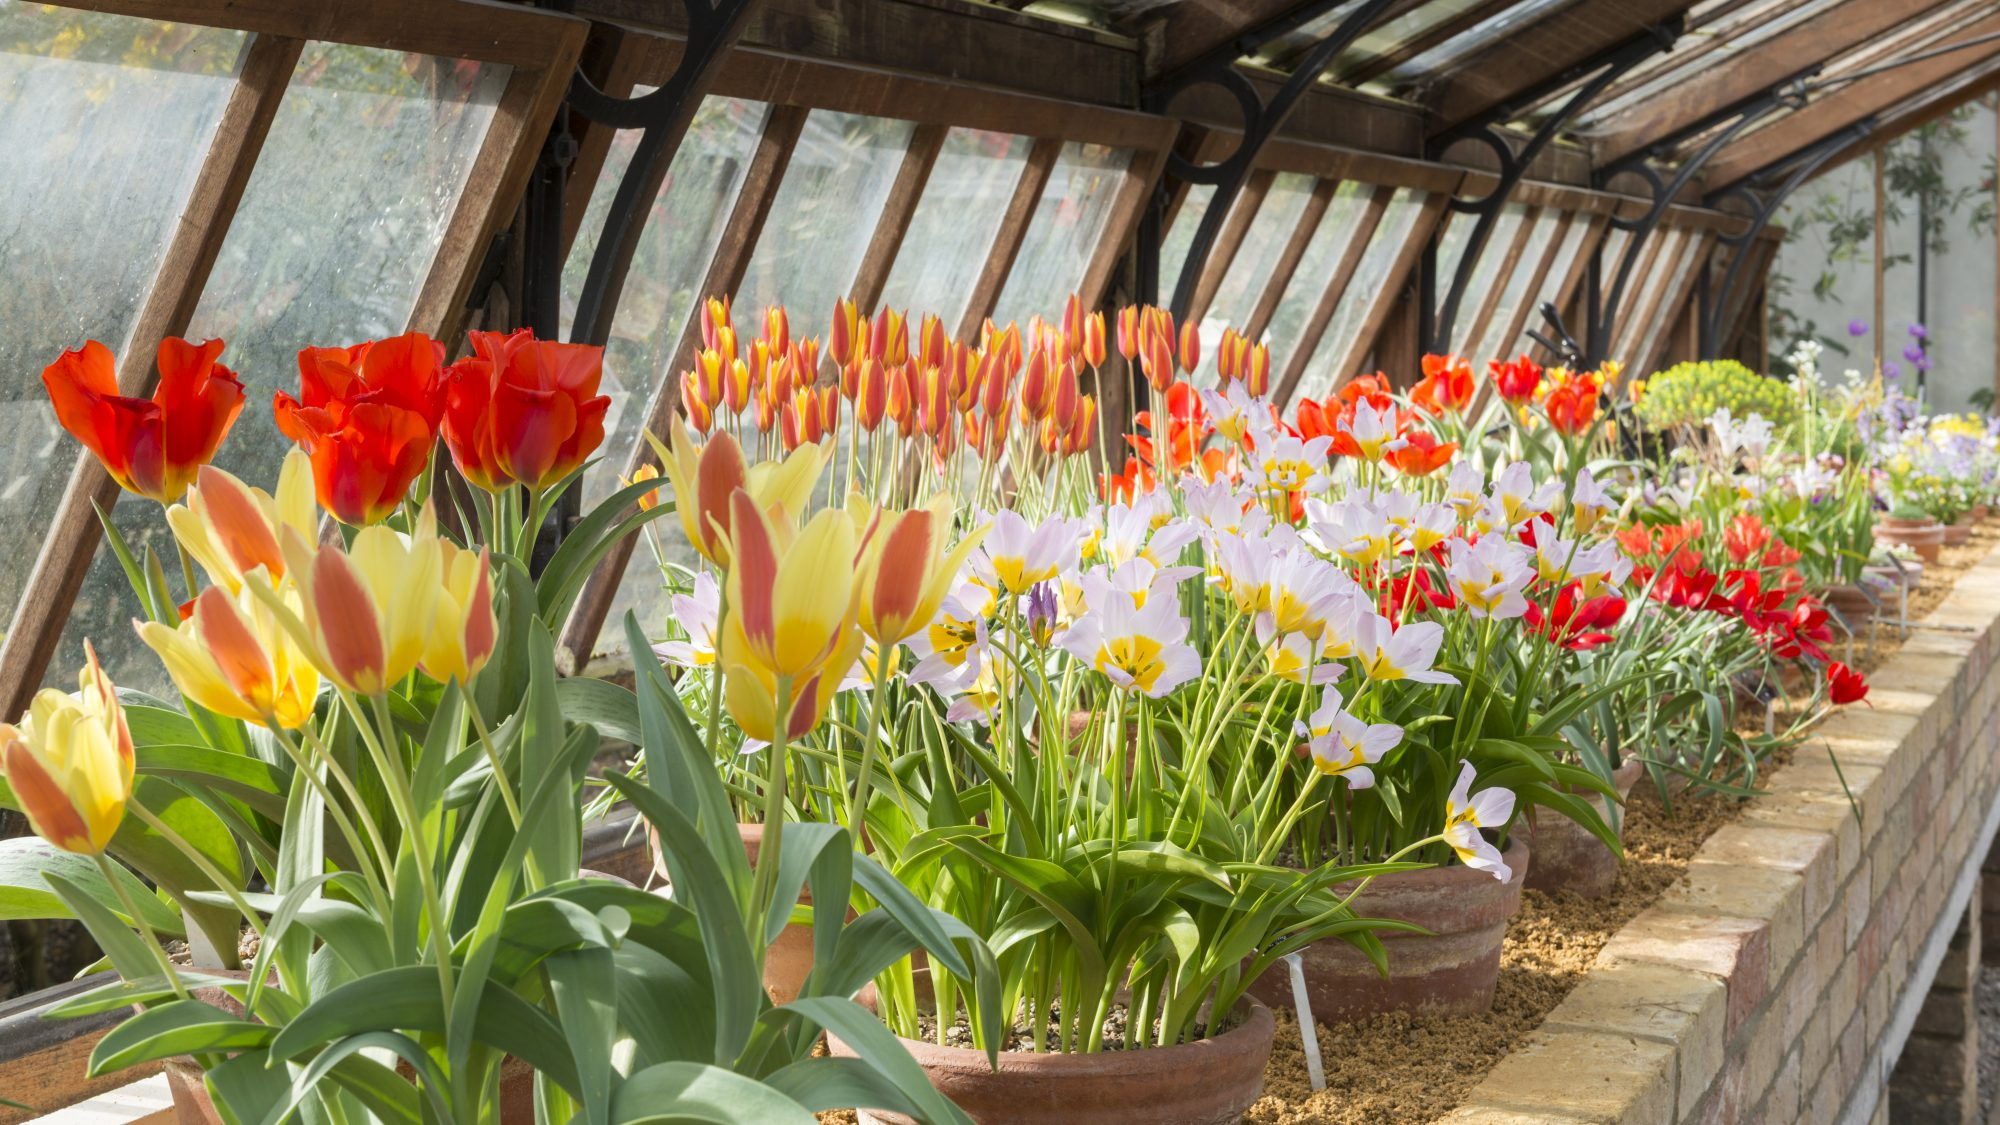 Tulips in the Glasshouse Range.